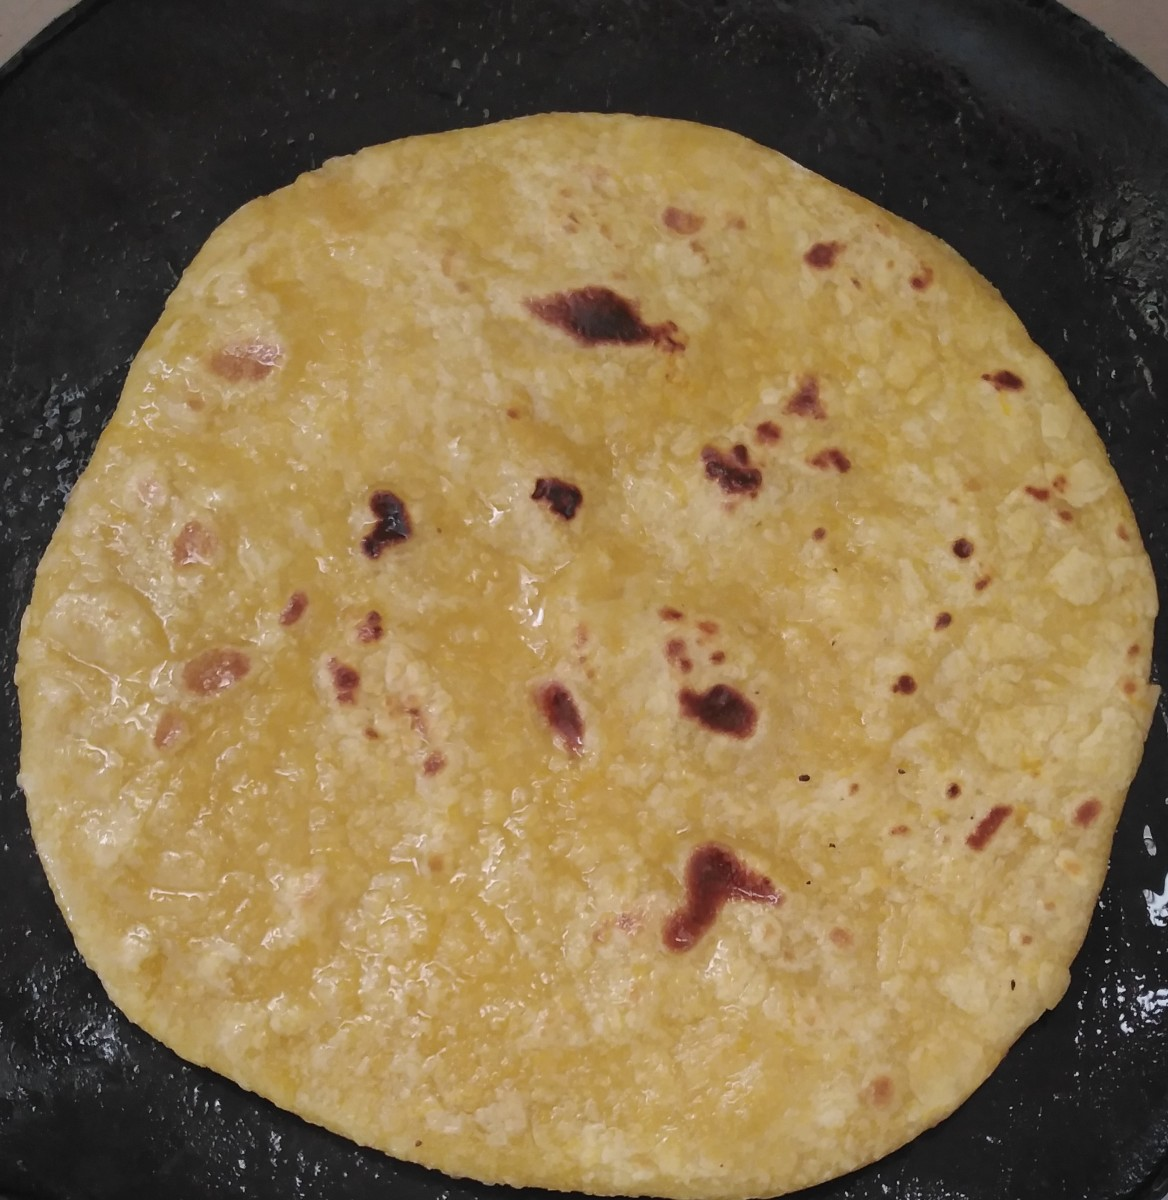 Apply 1 tablespoon of oil on the cooked side. After 1 minute, flip it and apply oil on the other side.